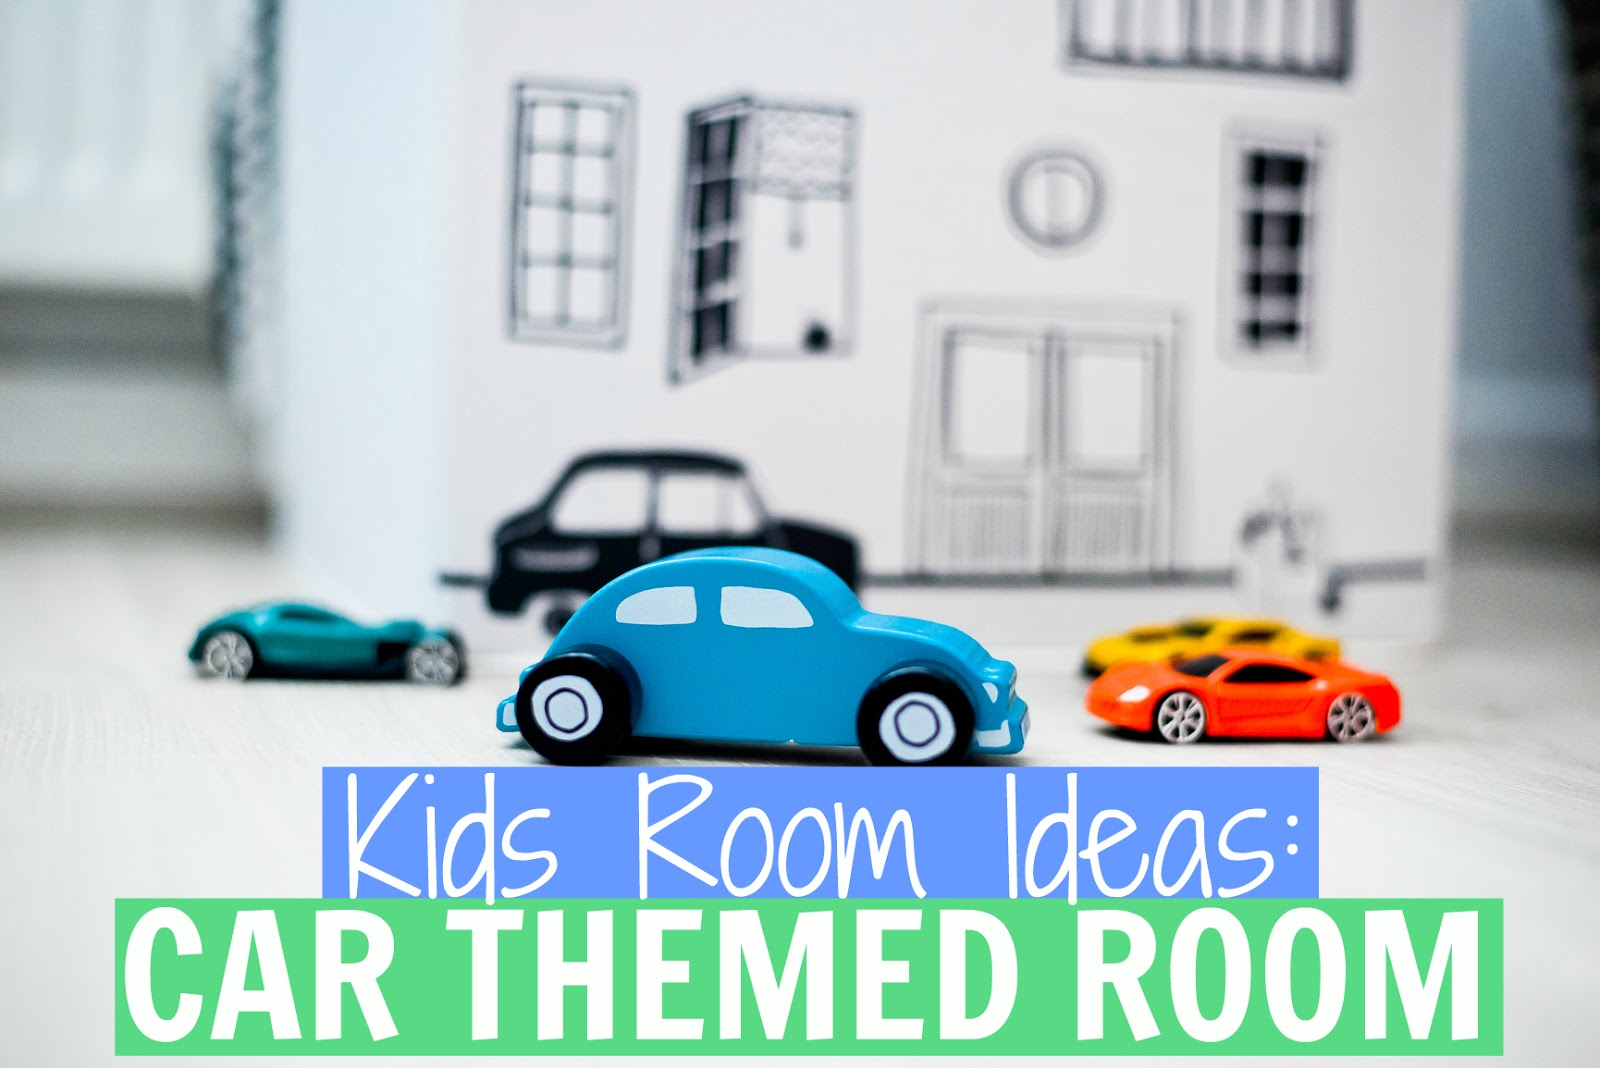 Kids Room Ideas: Car Themed Room - UK Family, Travel & Lifestyle ...